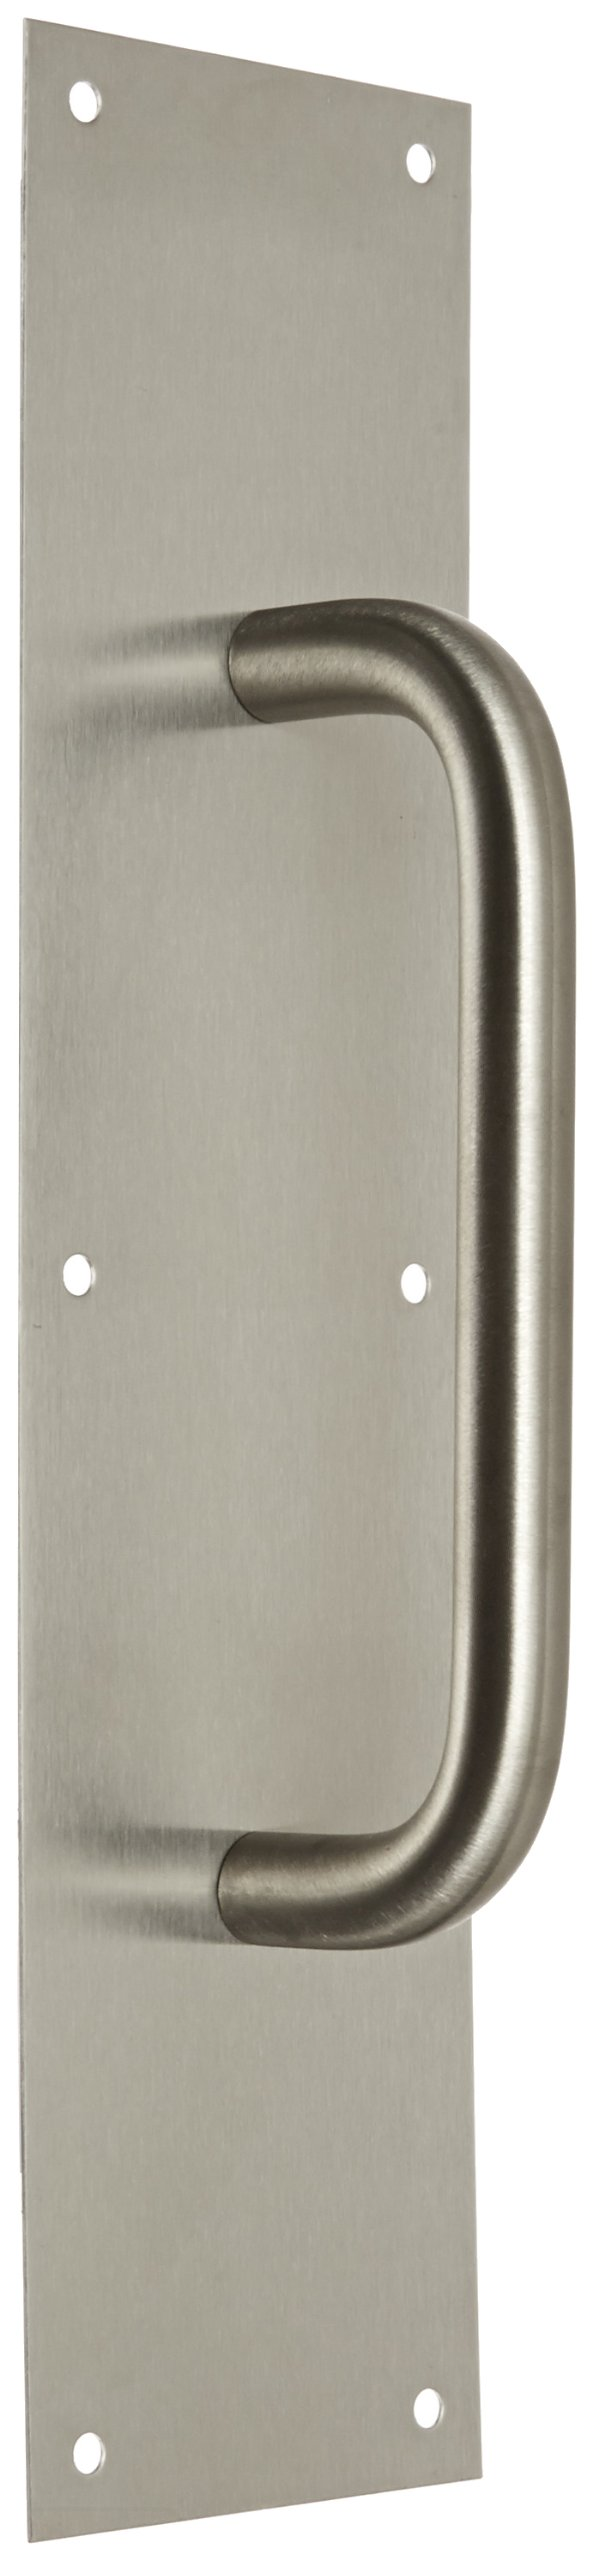 "Rockwood 107 X 70C.32D Stainless Steel Pull Plate, 16"" Height x 4"" Width x 0.050"" Thick, 8"" Center-to-Center Handle Length, 3/4"" Pull Diameter, Satin Finish"